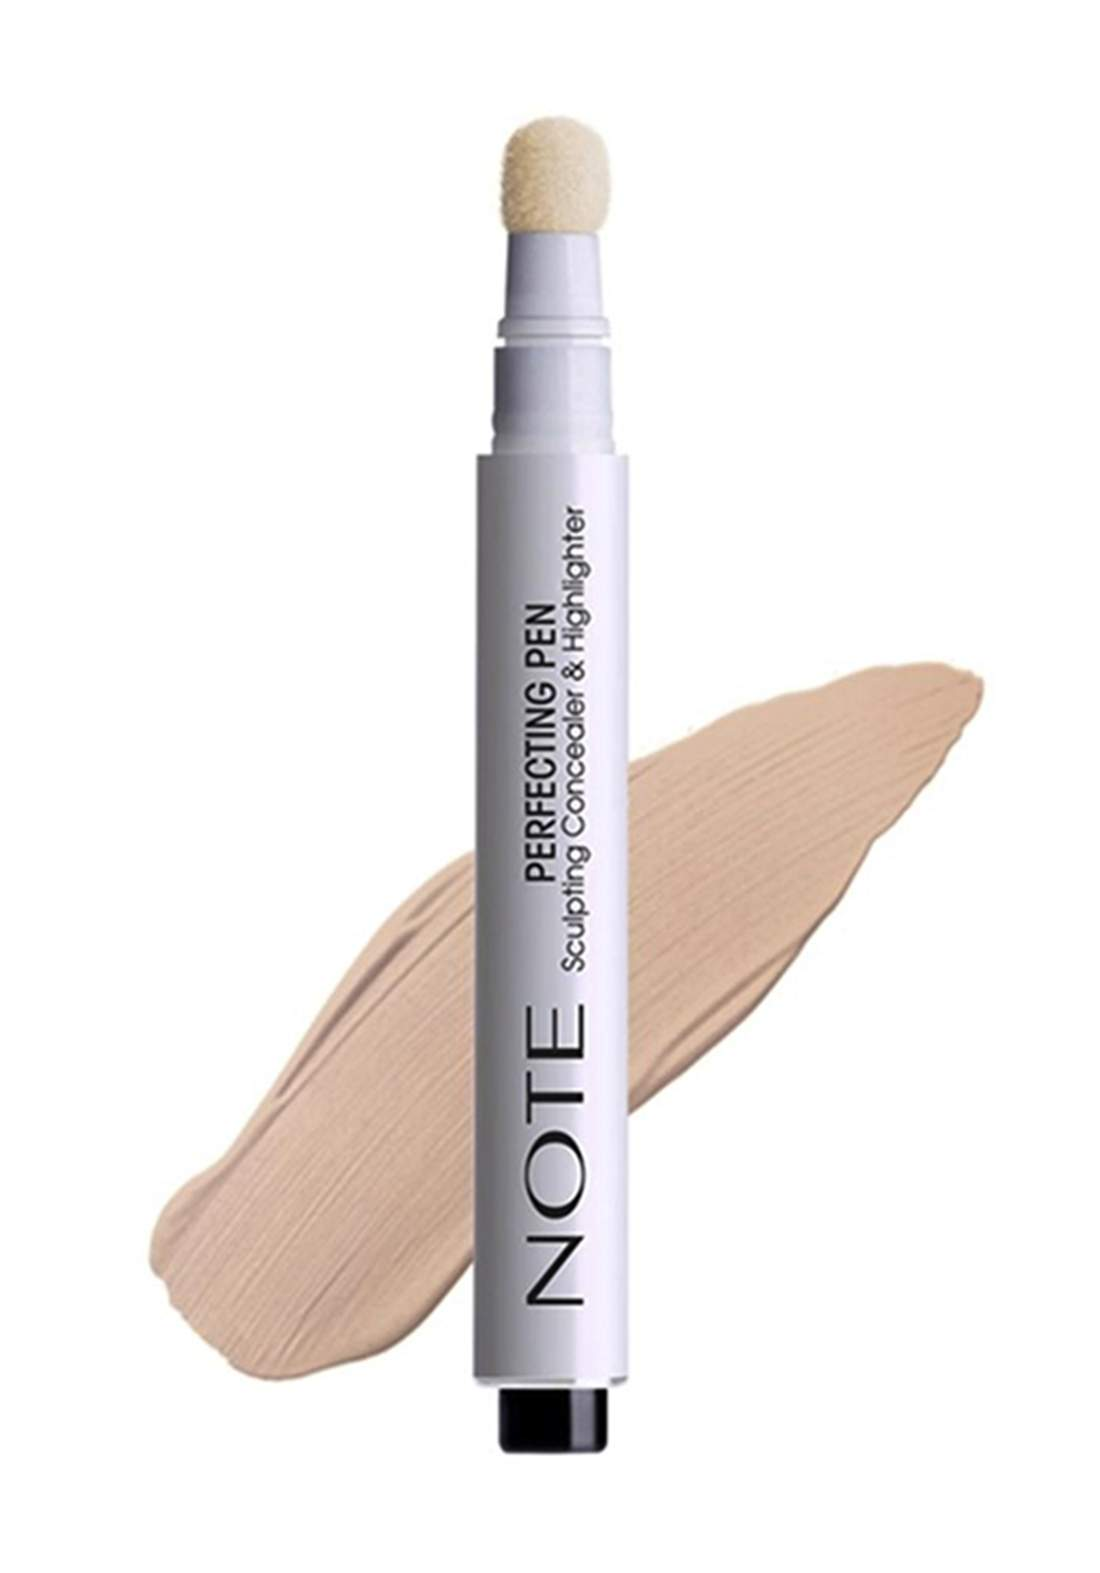 Note Perfecting Concealer And Highlighter Pen No.03 Light Beige - 3ml كونسيلر